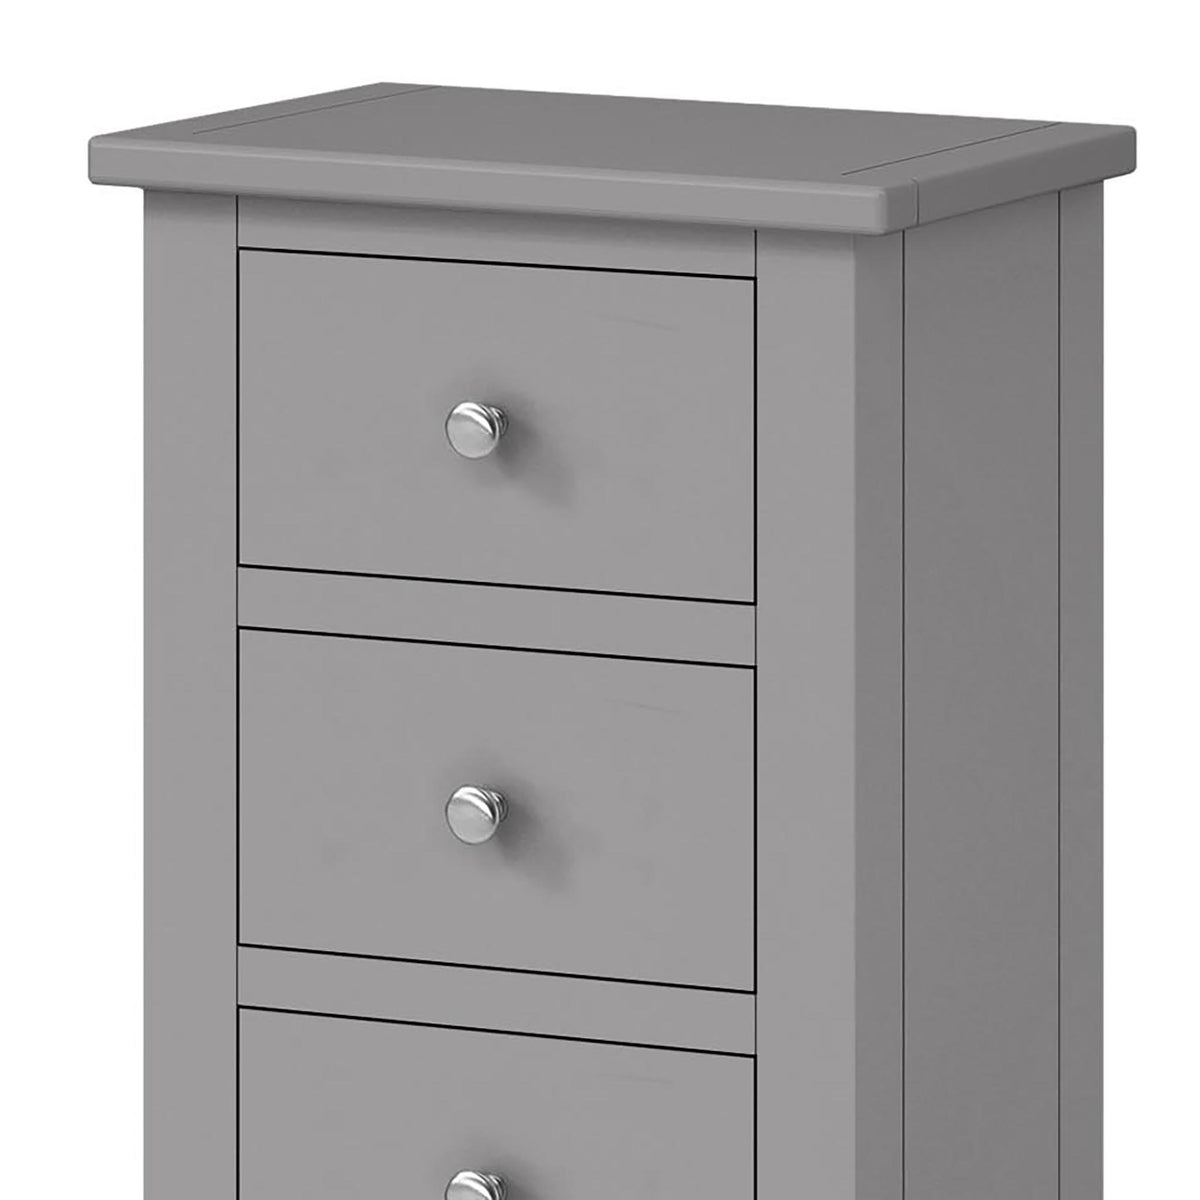 The Cornish Grey Tallboy - Close Up of Top of Unit